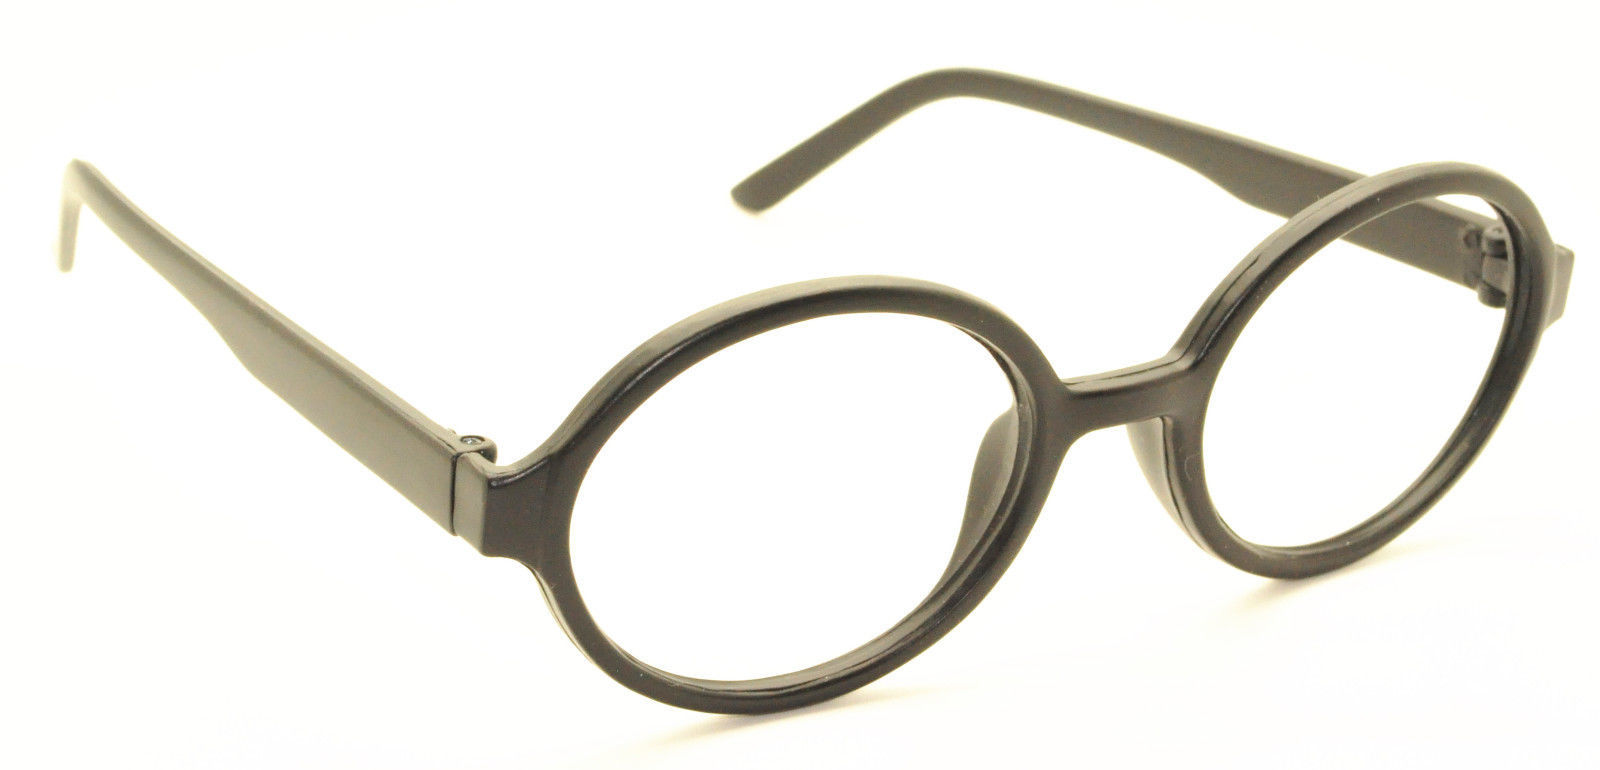 Geek Nerd Style Oval Round Shape Style Glasses Frames NO LENS Wizard Costume image 8